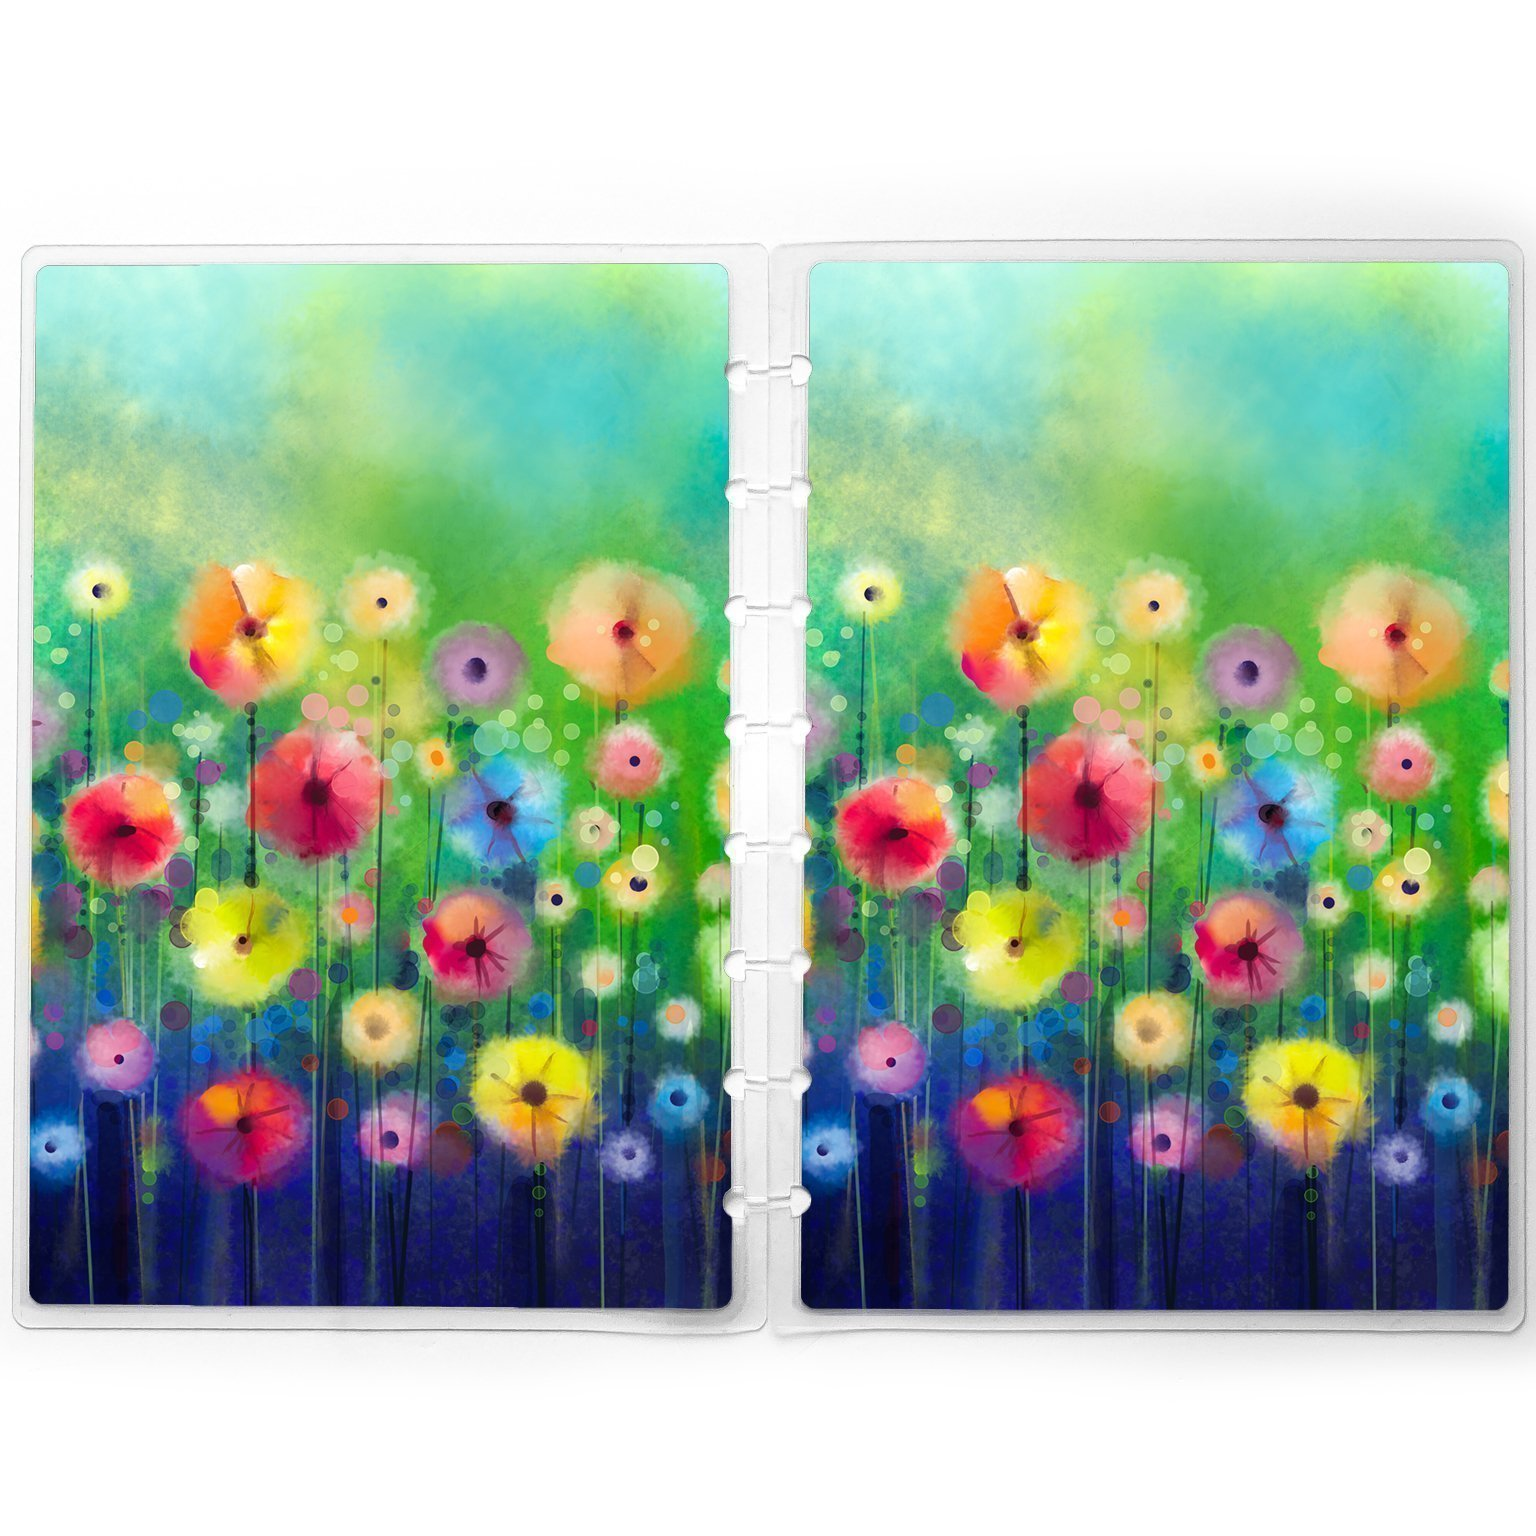 Disc-bound Planner Cover | Vivid Floral